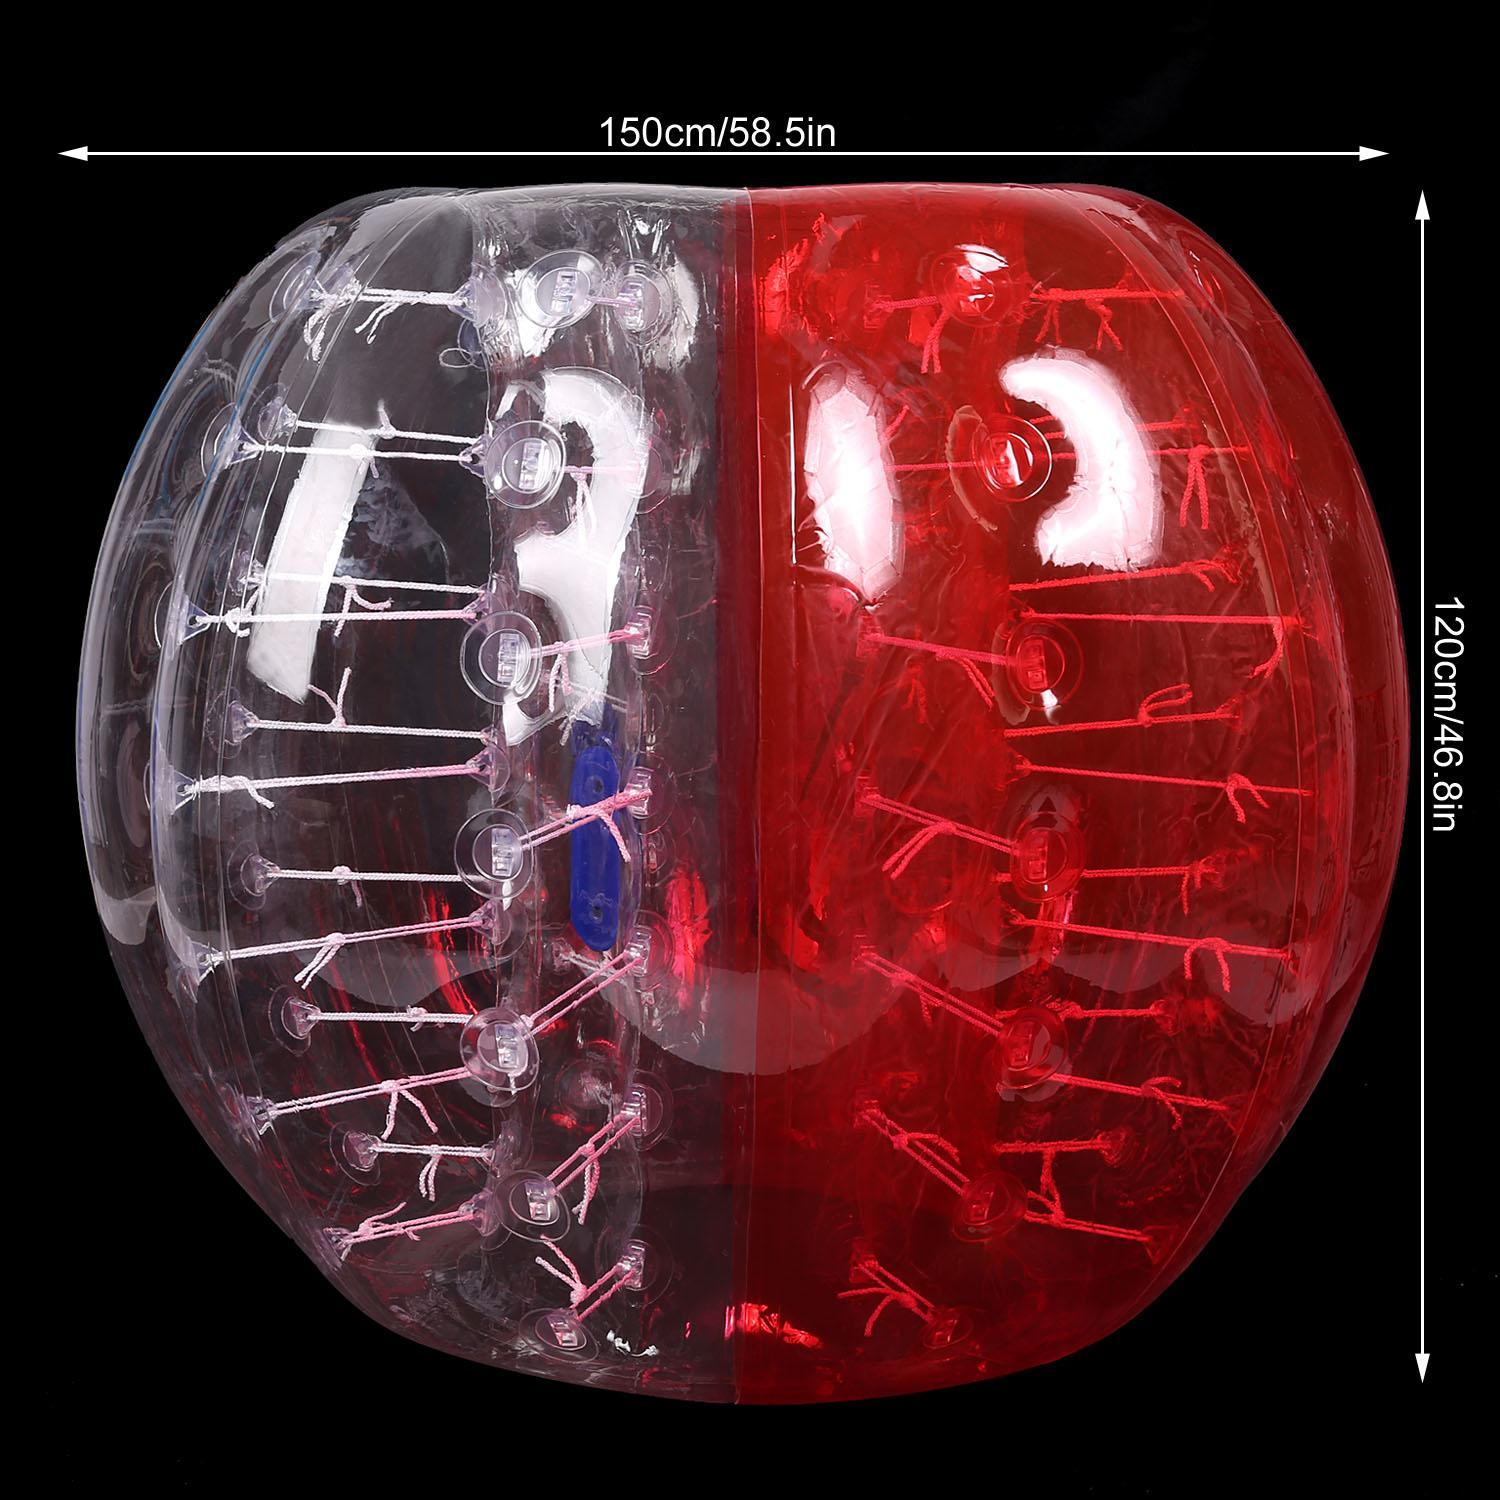 1 PC 1.5M Inflatable Bumper Ball Body Zorbing Ball Zorb Bubble Soccer Football by